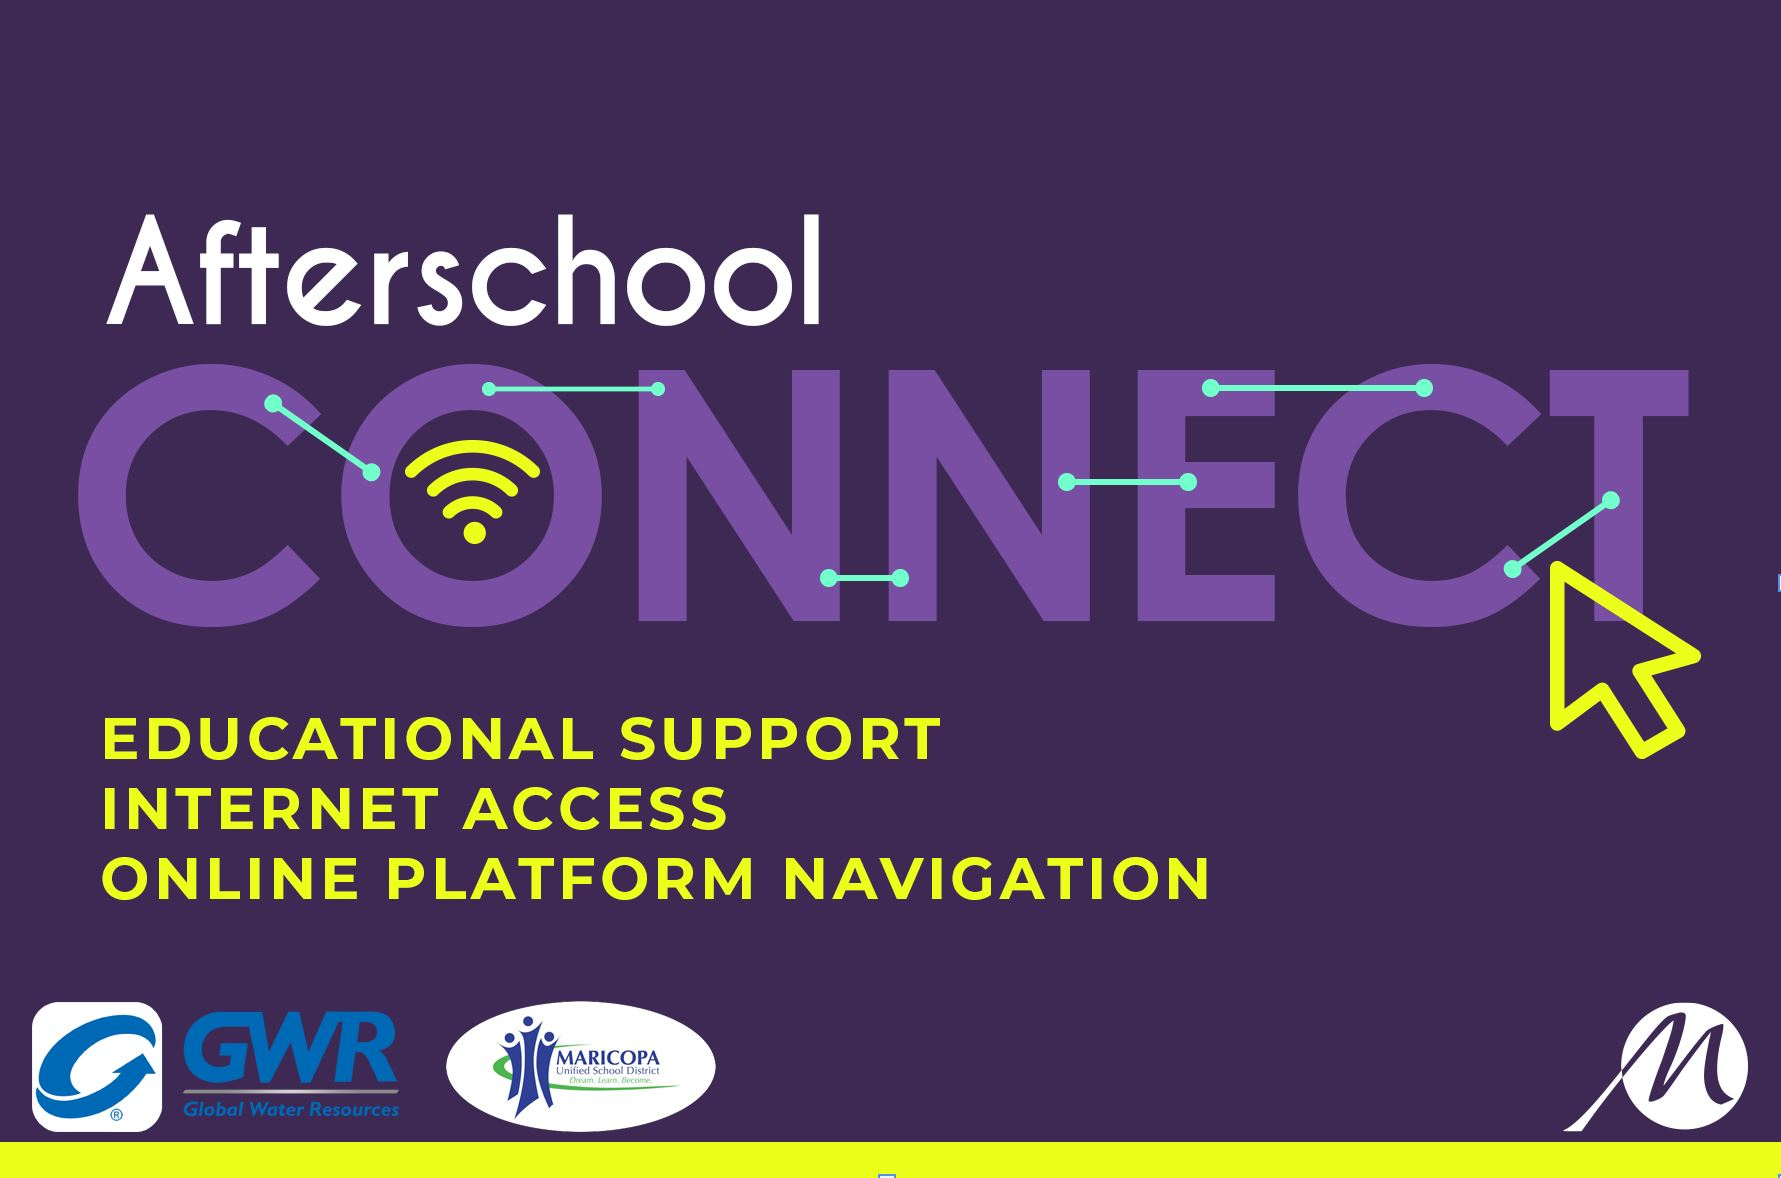 Afterschool Connect